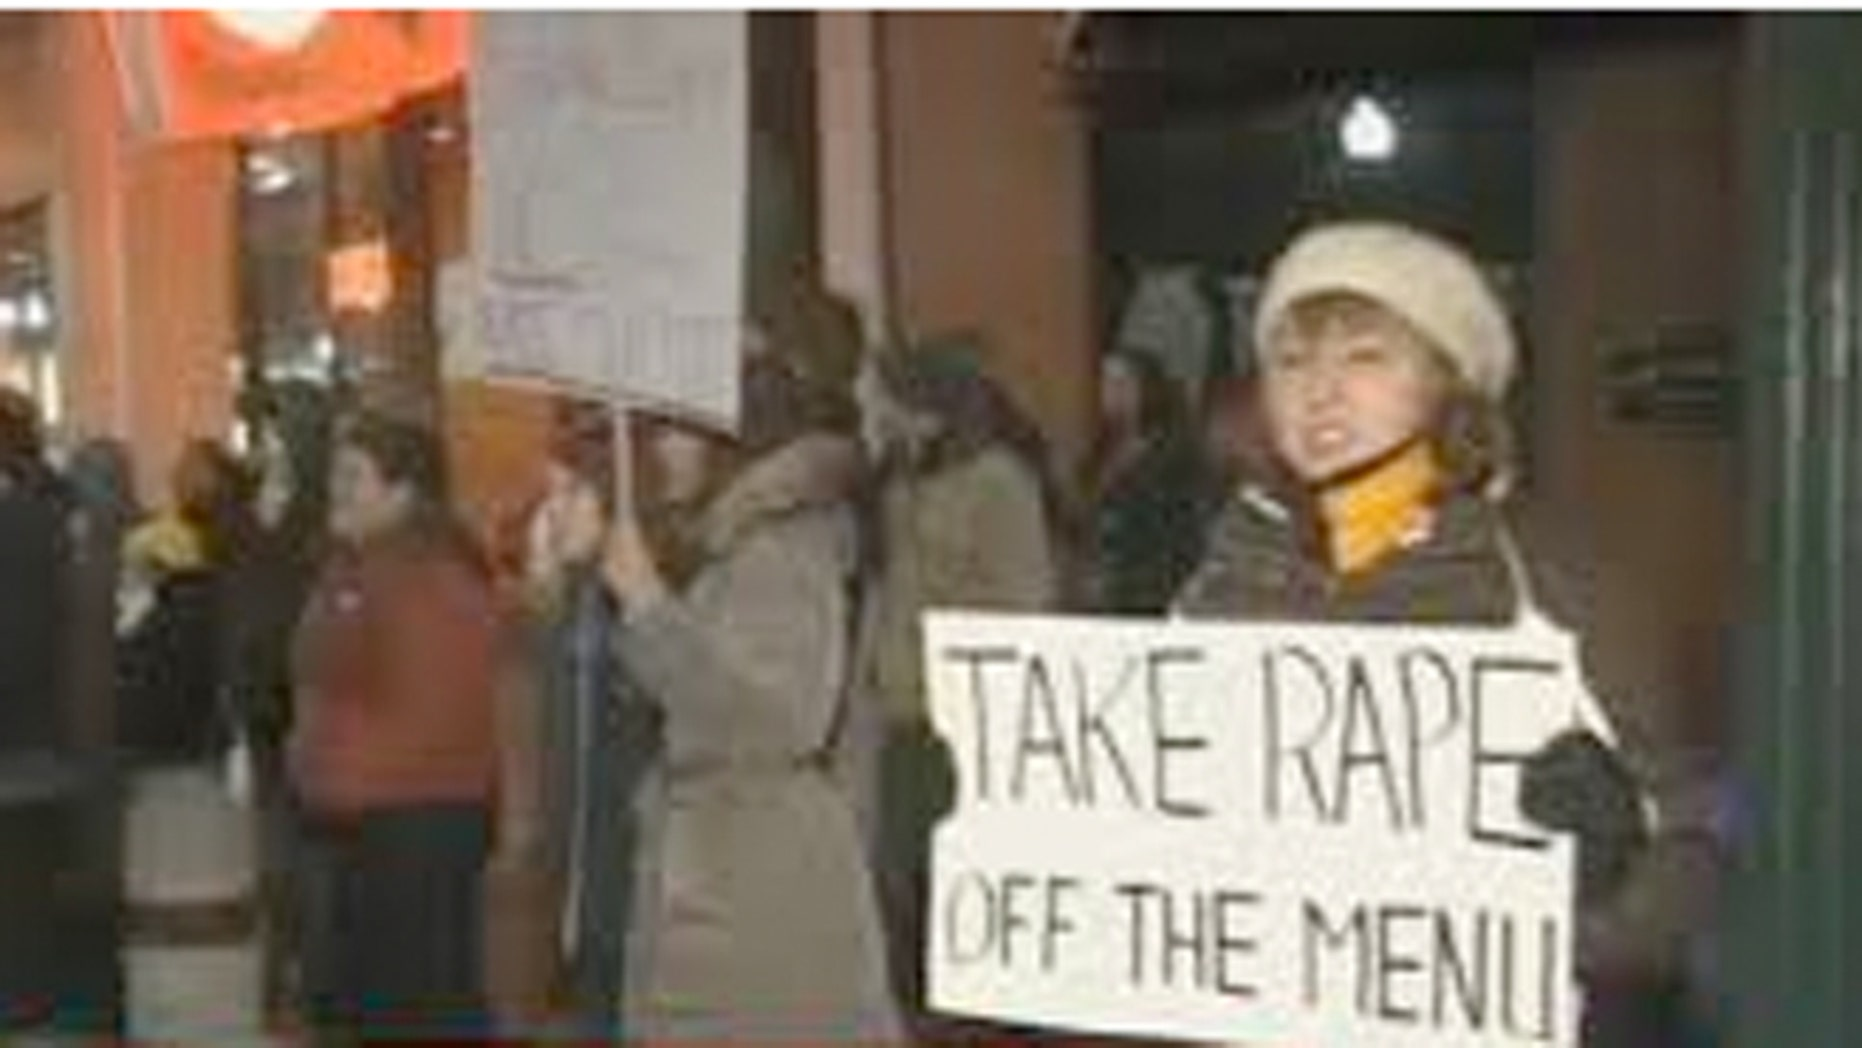 Over the weekend, some 100 protestors gathered outside Daiquiri Factory to protest the bar's Date Grape Koolaid drink.